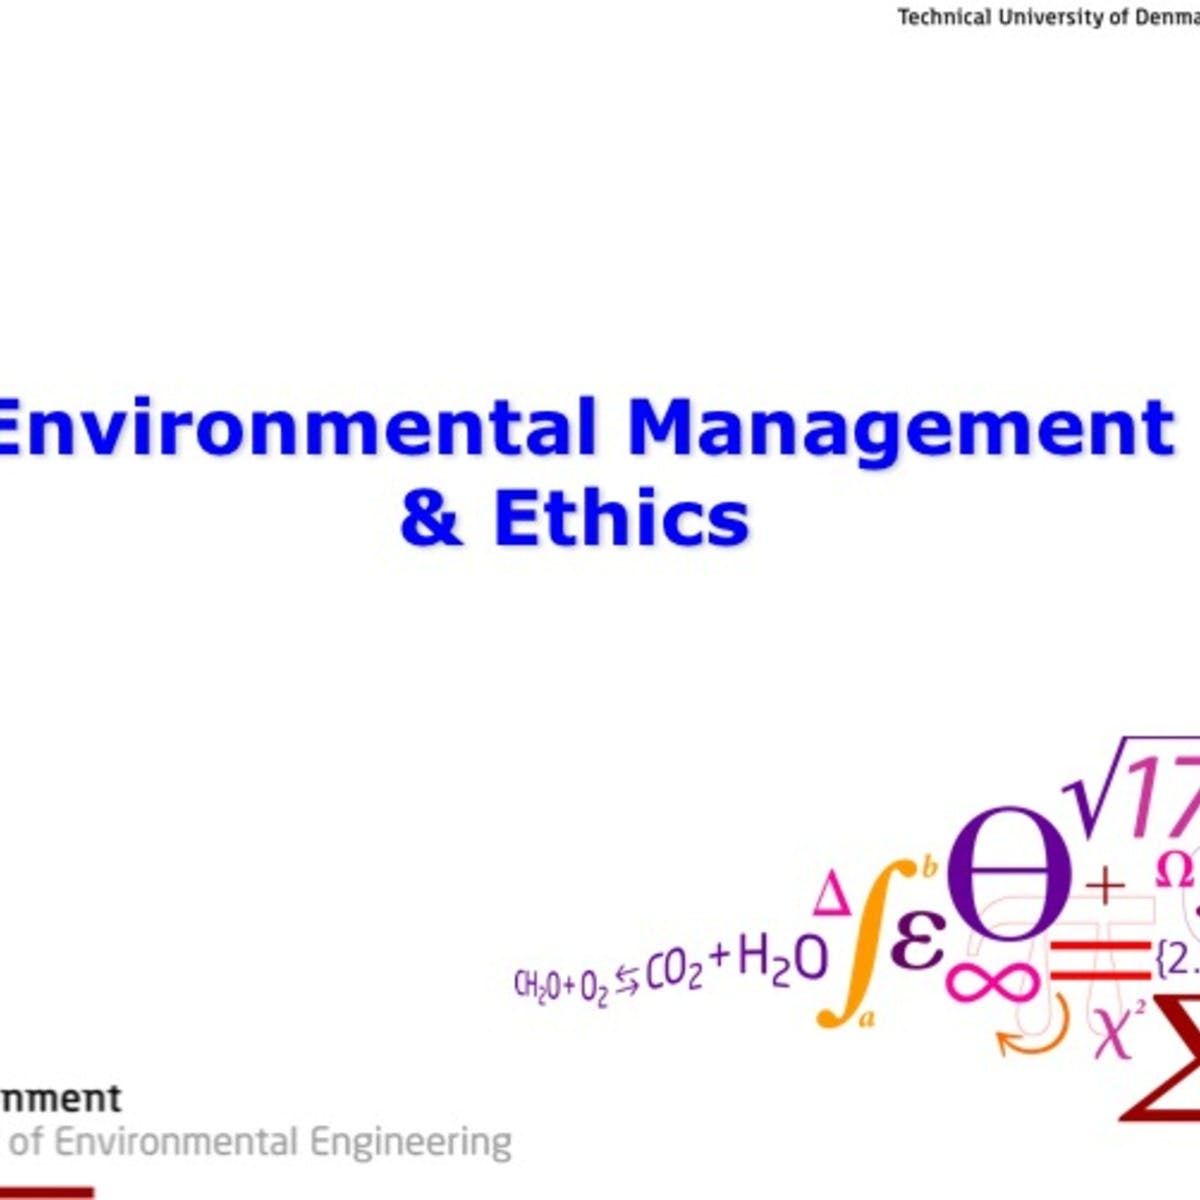 Environmental Management & Ethics